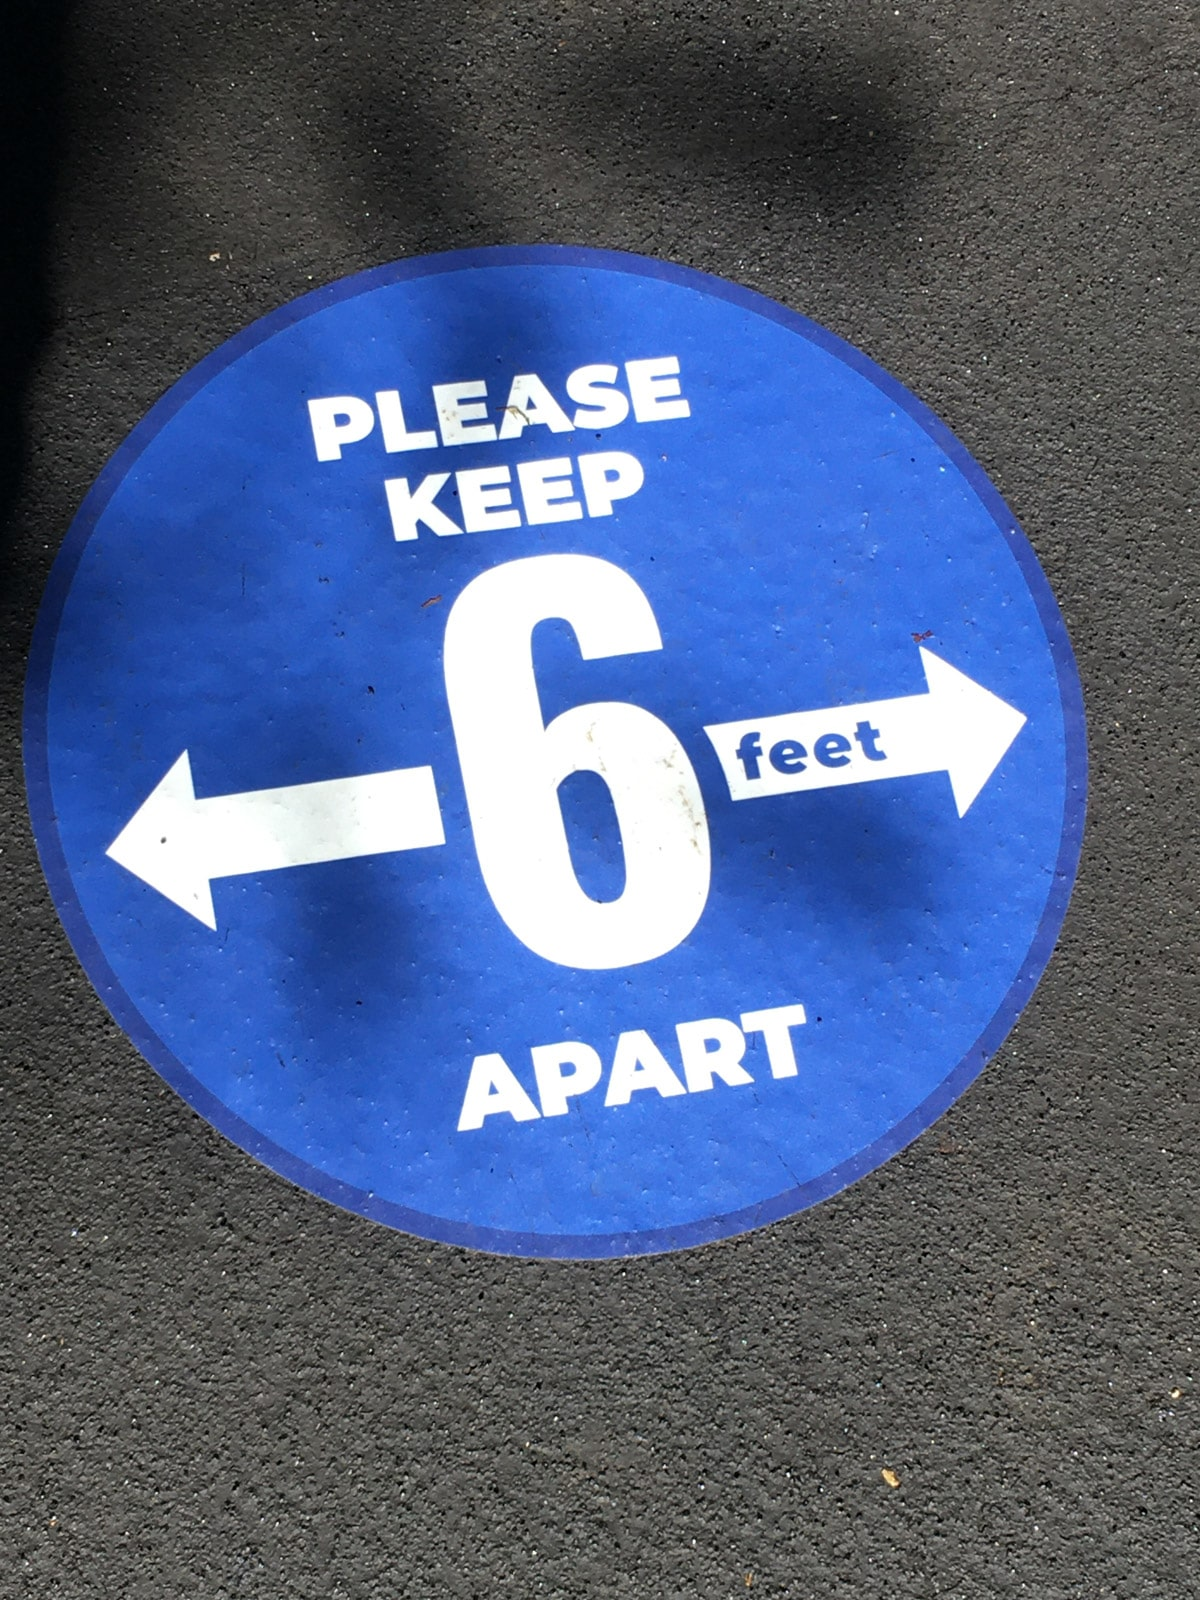 Six feet apart sticker at Silver Dollar City